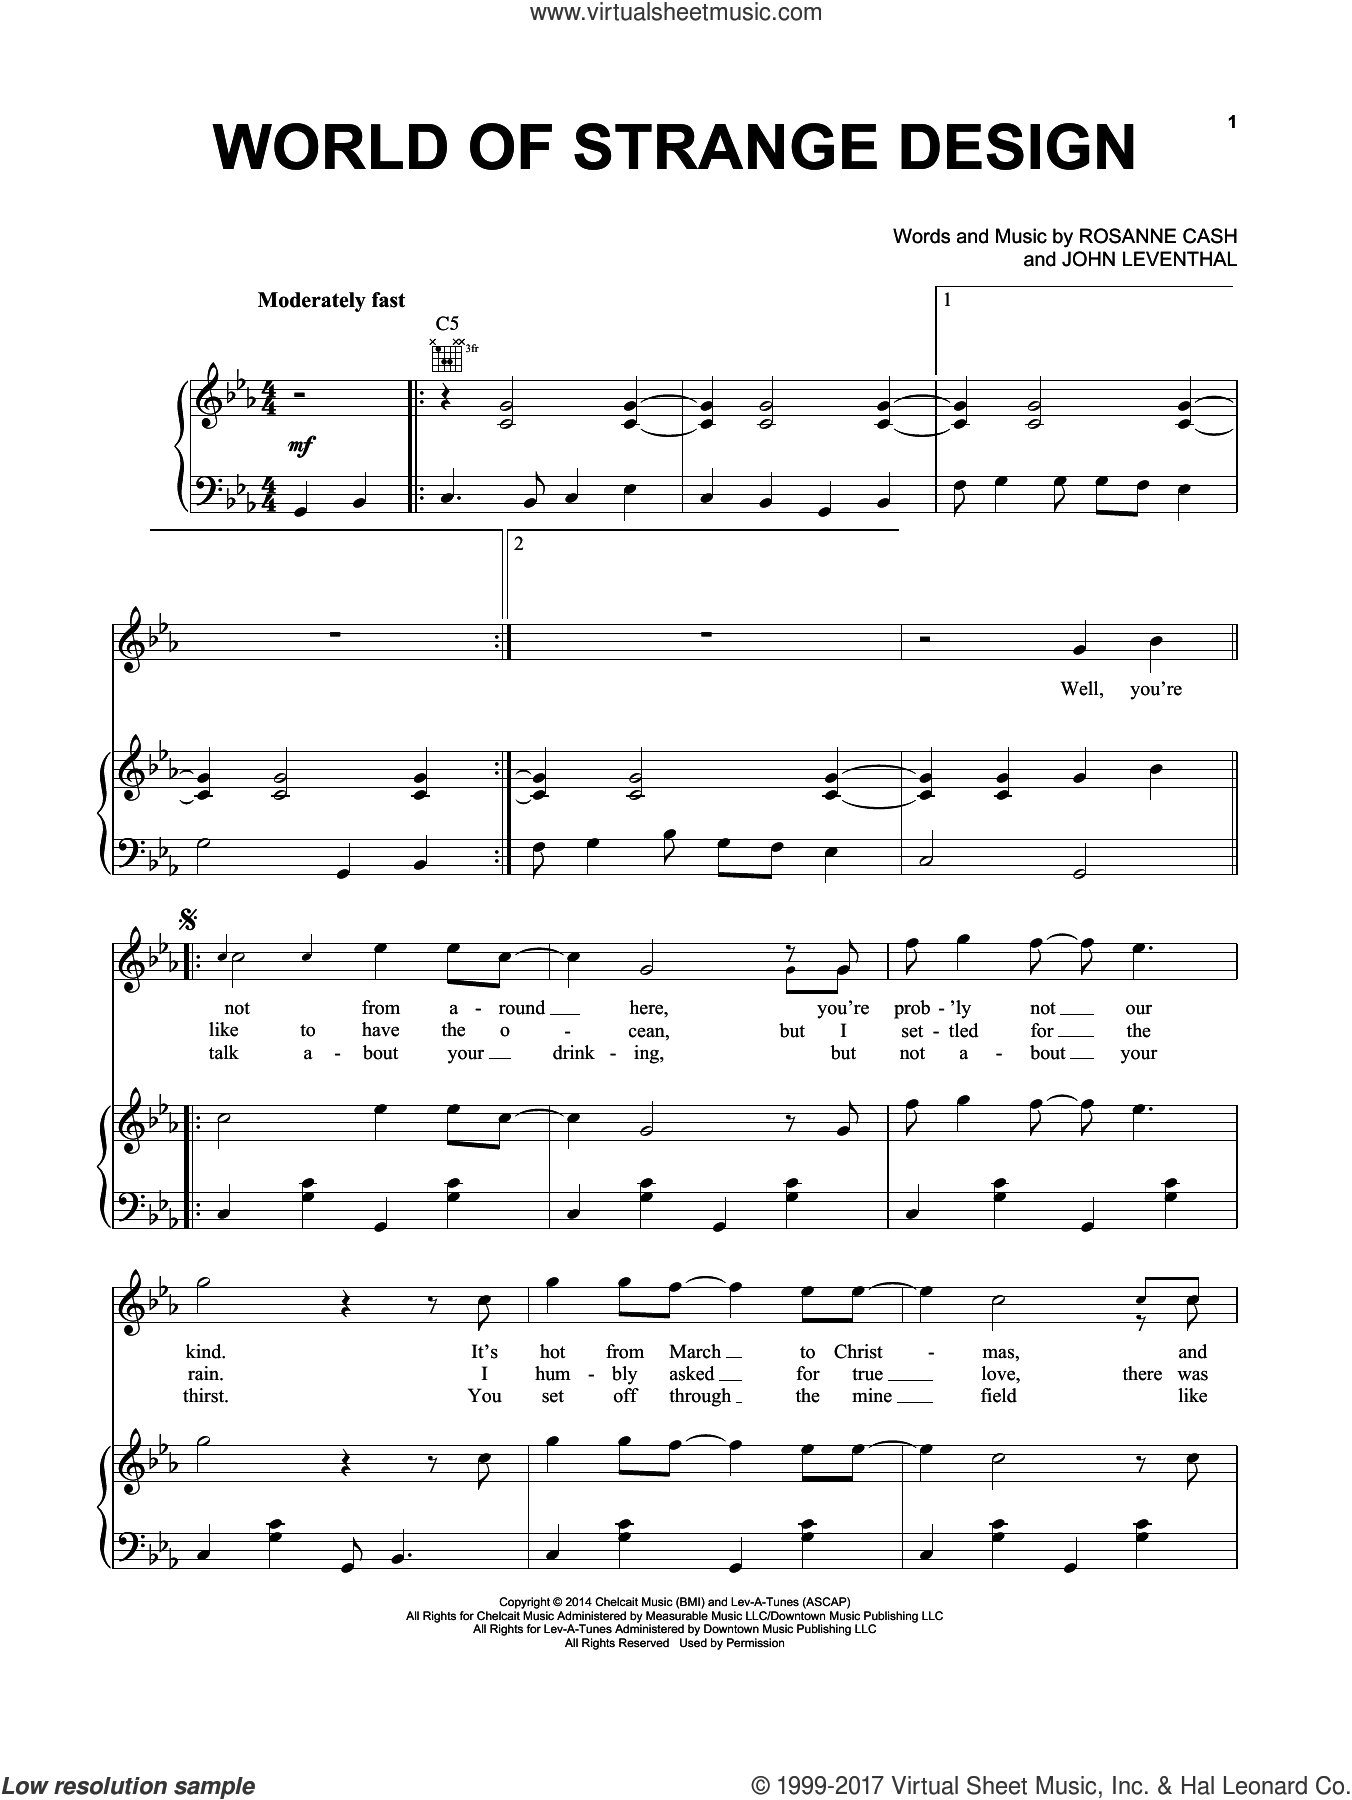 World Of Strange Design sheet music for voice, piano or guitar by Rosanne Cash and John Leventhal. Score Image Preview.